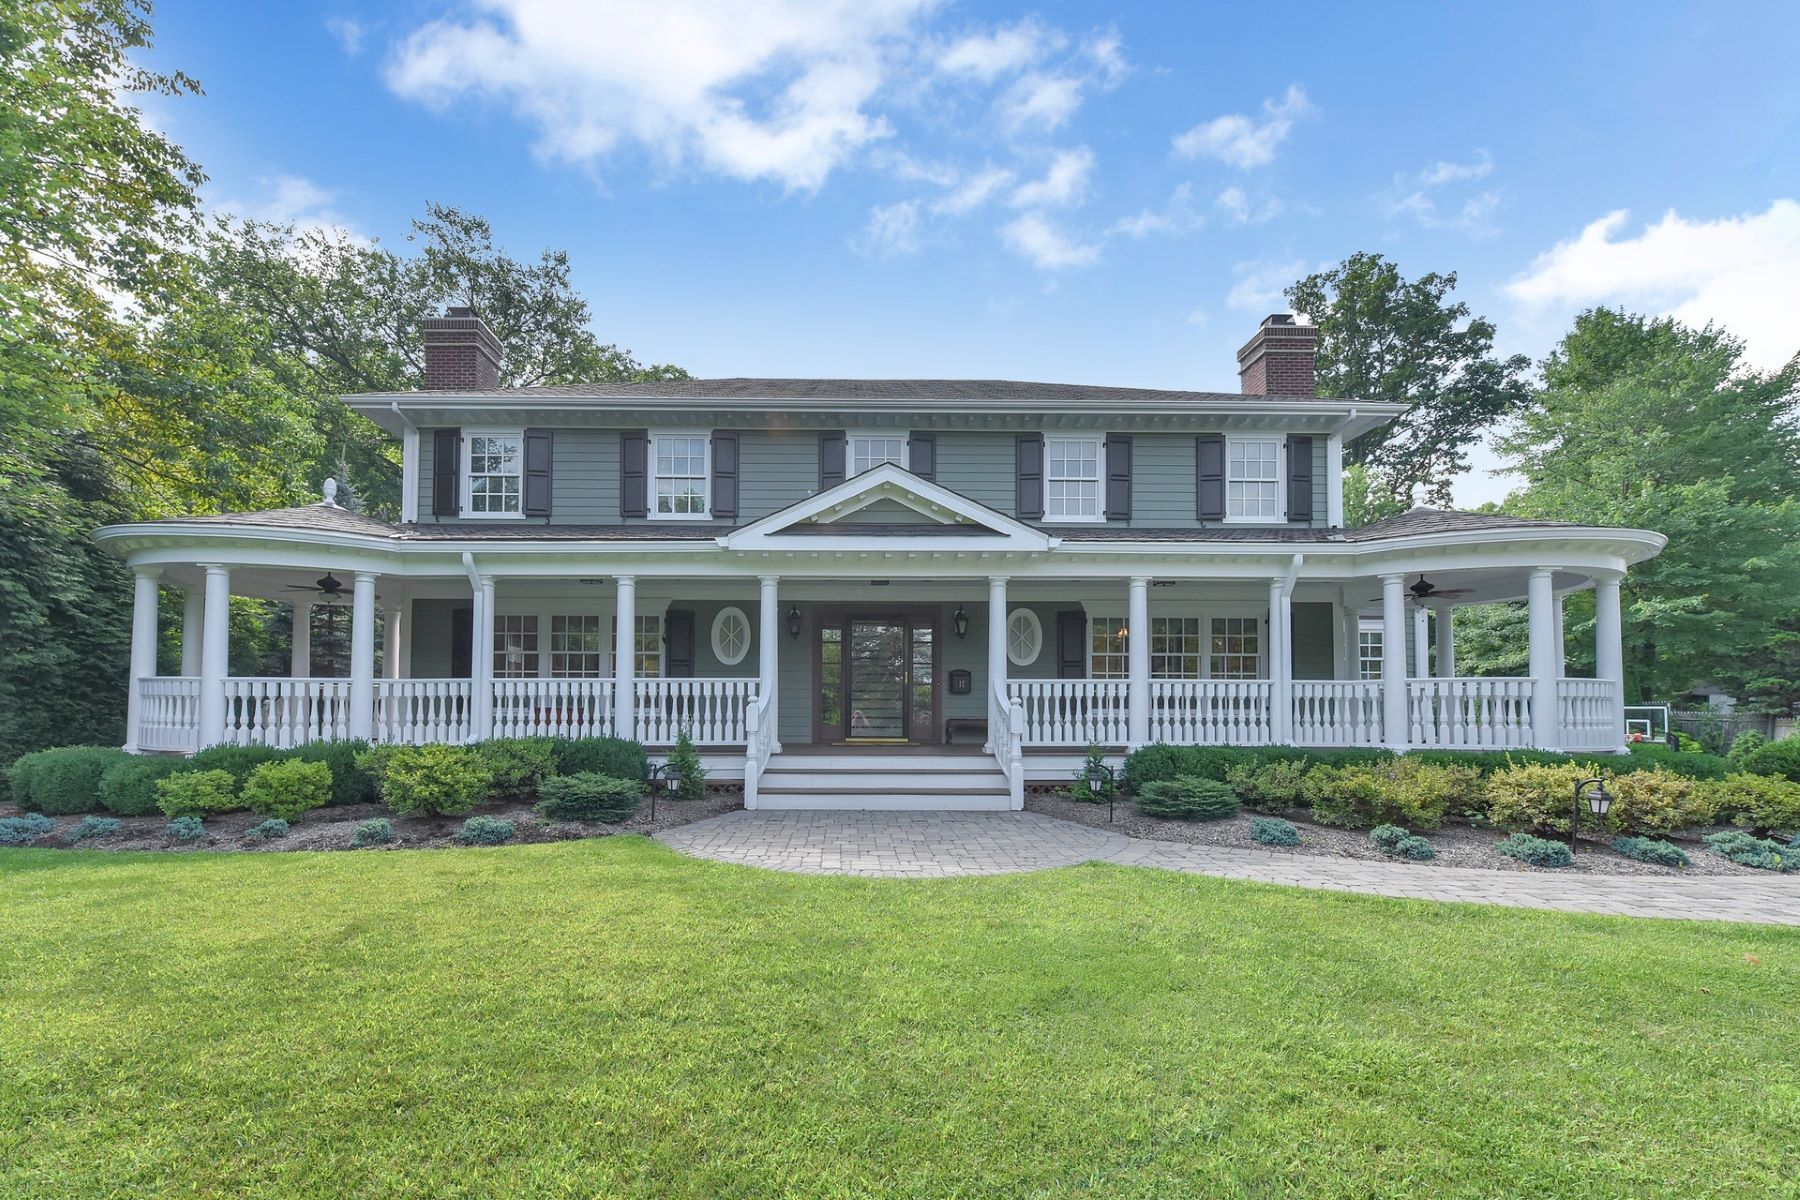 Single Family Home for Sale at Stately Sanctuary 17 Farbrook Drive, Short Hills, New Jersey 07078 United States